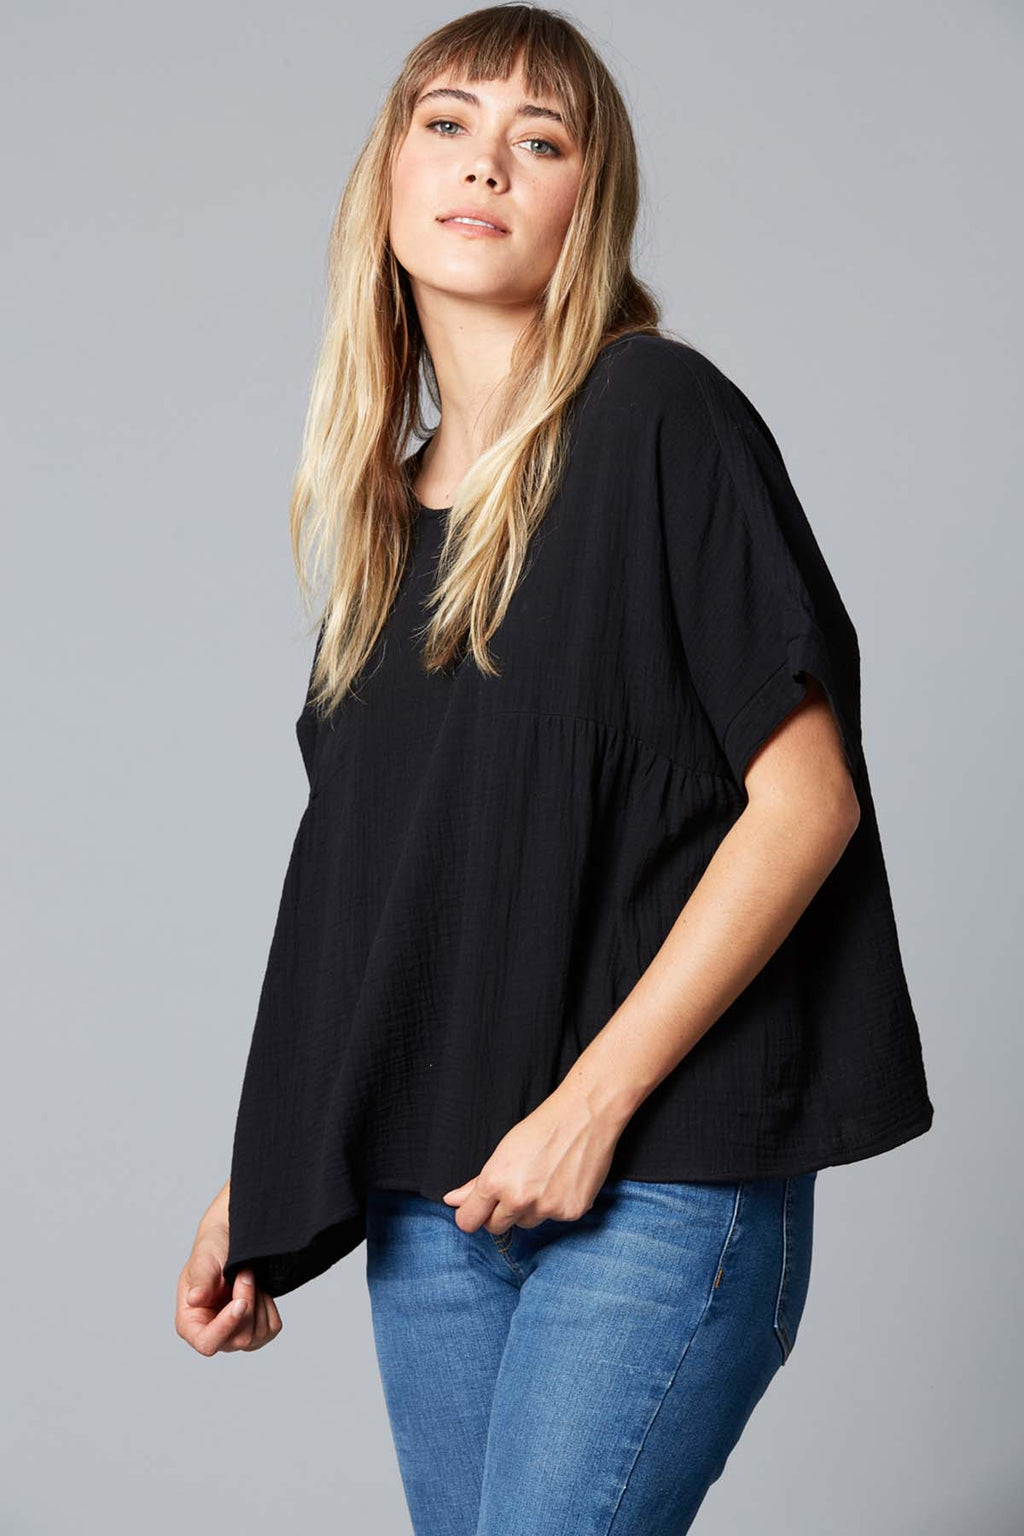 Weekender Top - Black - The Bohemian Corner